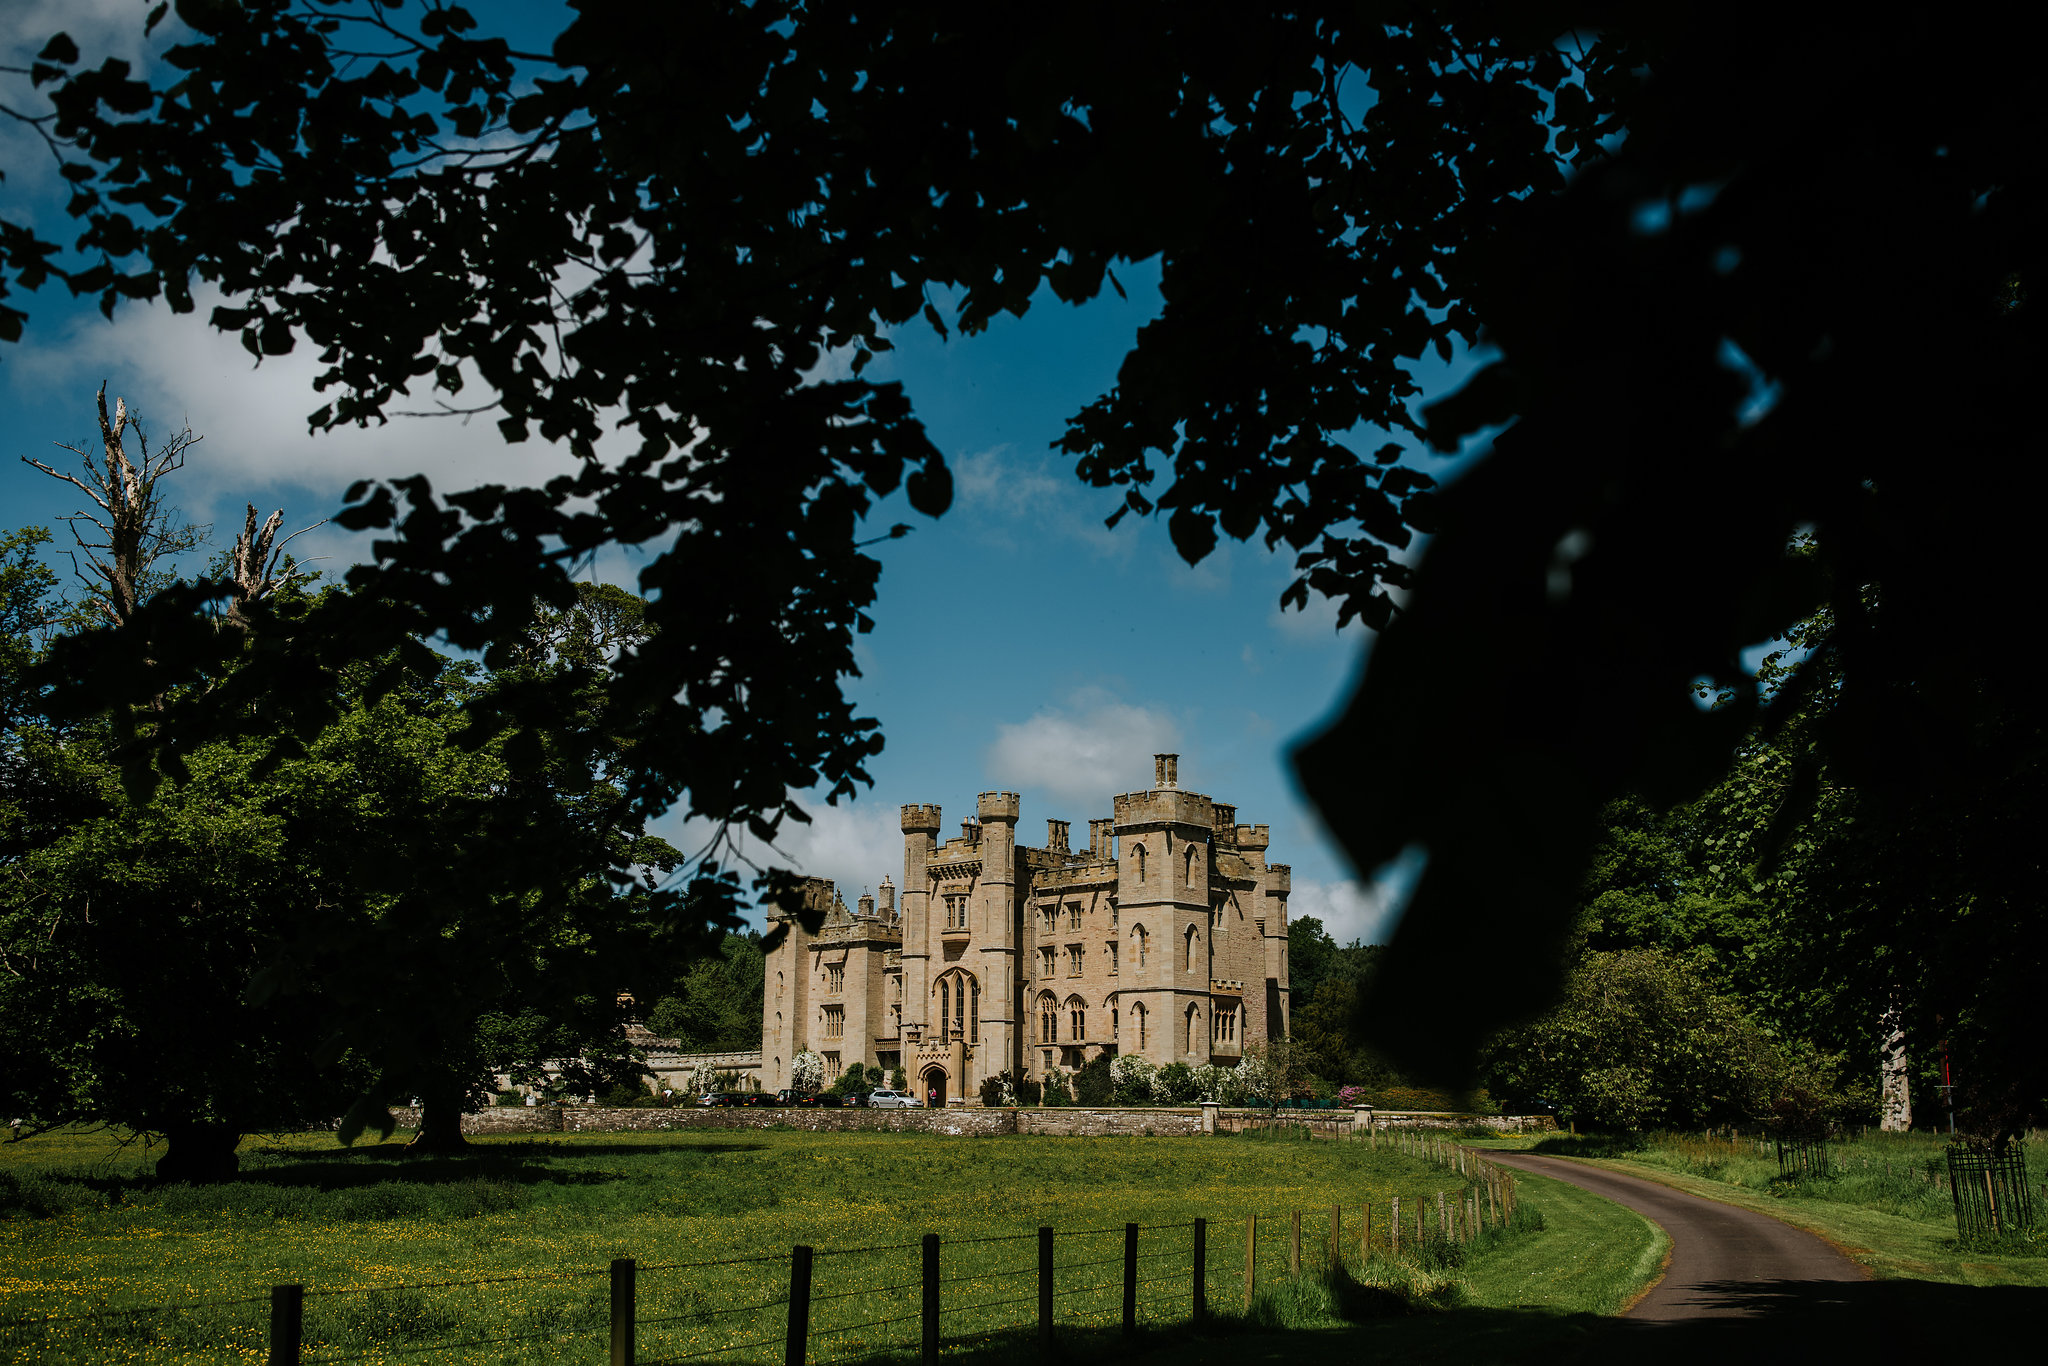 Duns_Castle_wedding_photographer_ross_alexander_photography (16).jpg